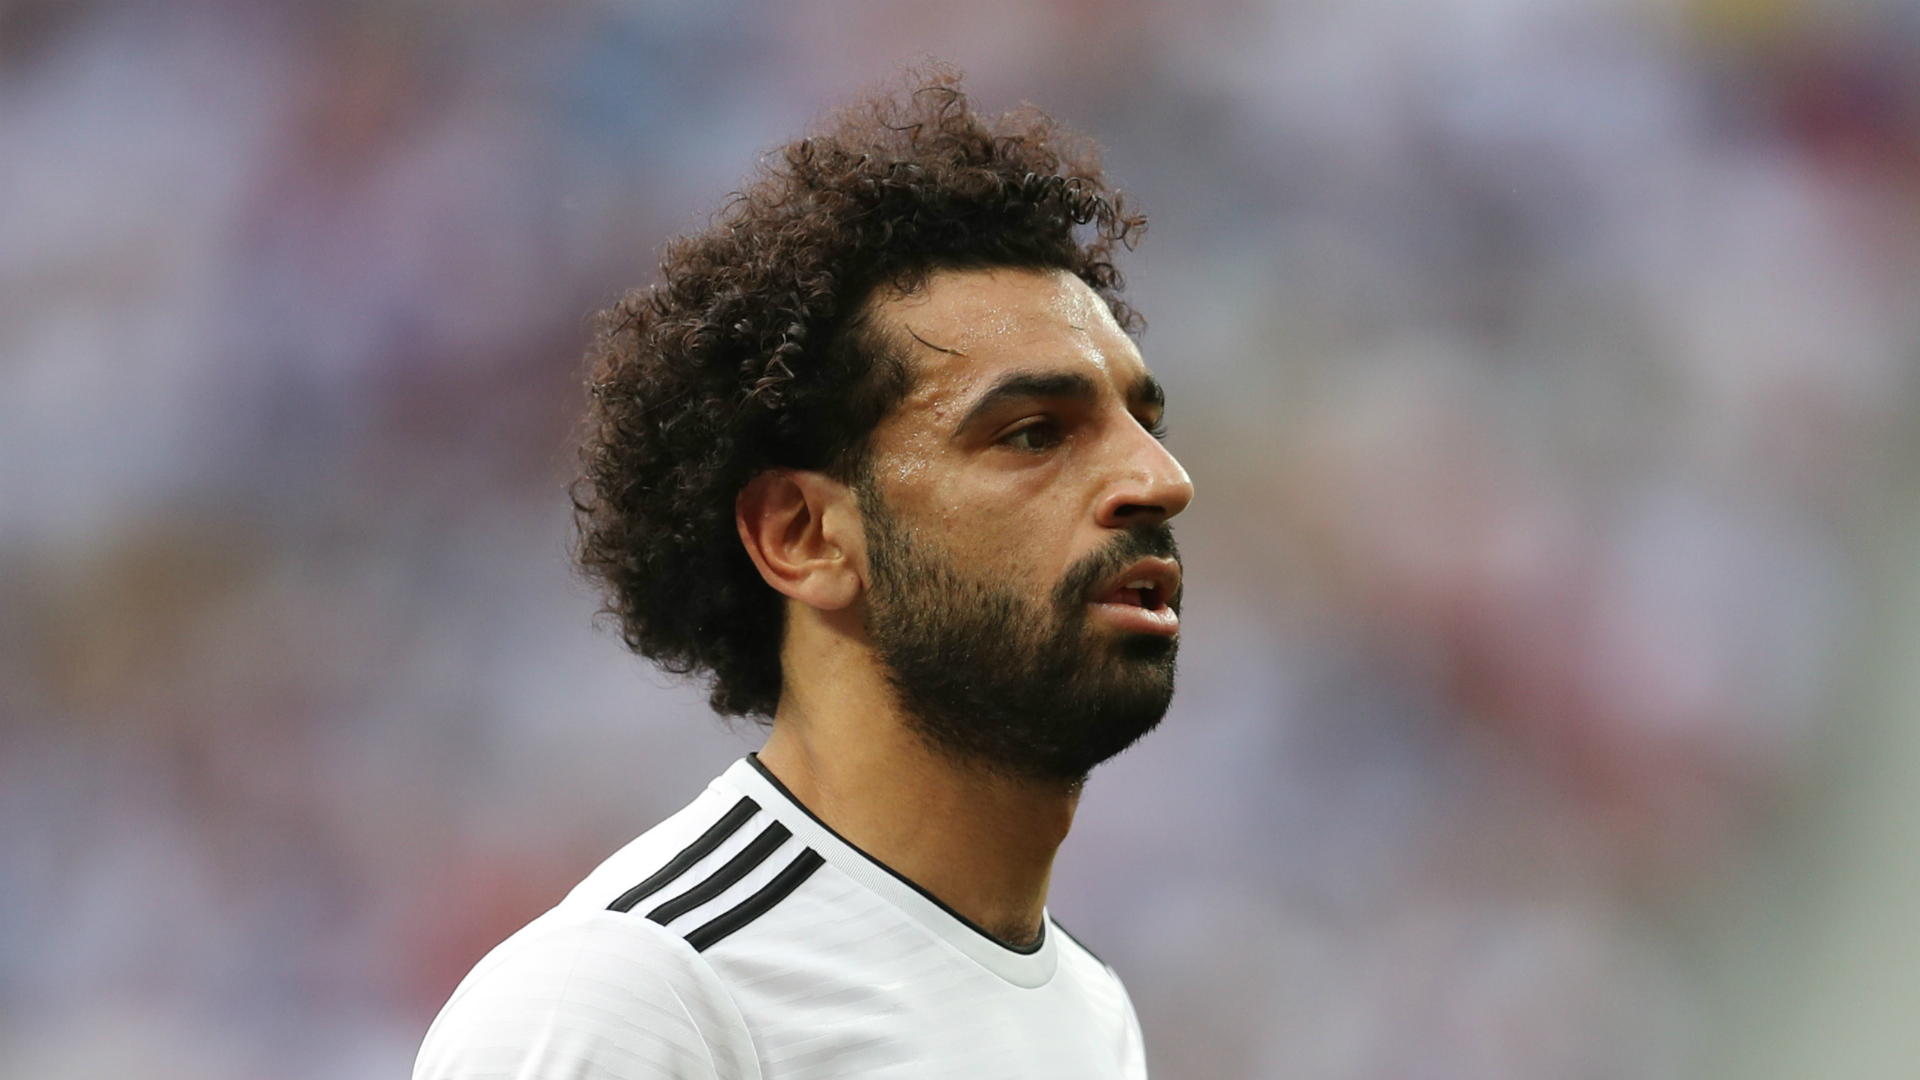 Egypt v South Africa: Fitness-doubt Salah can show he's world's best, says Aguirre